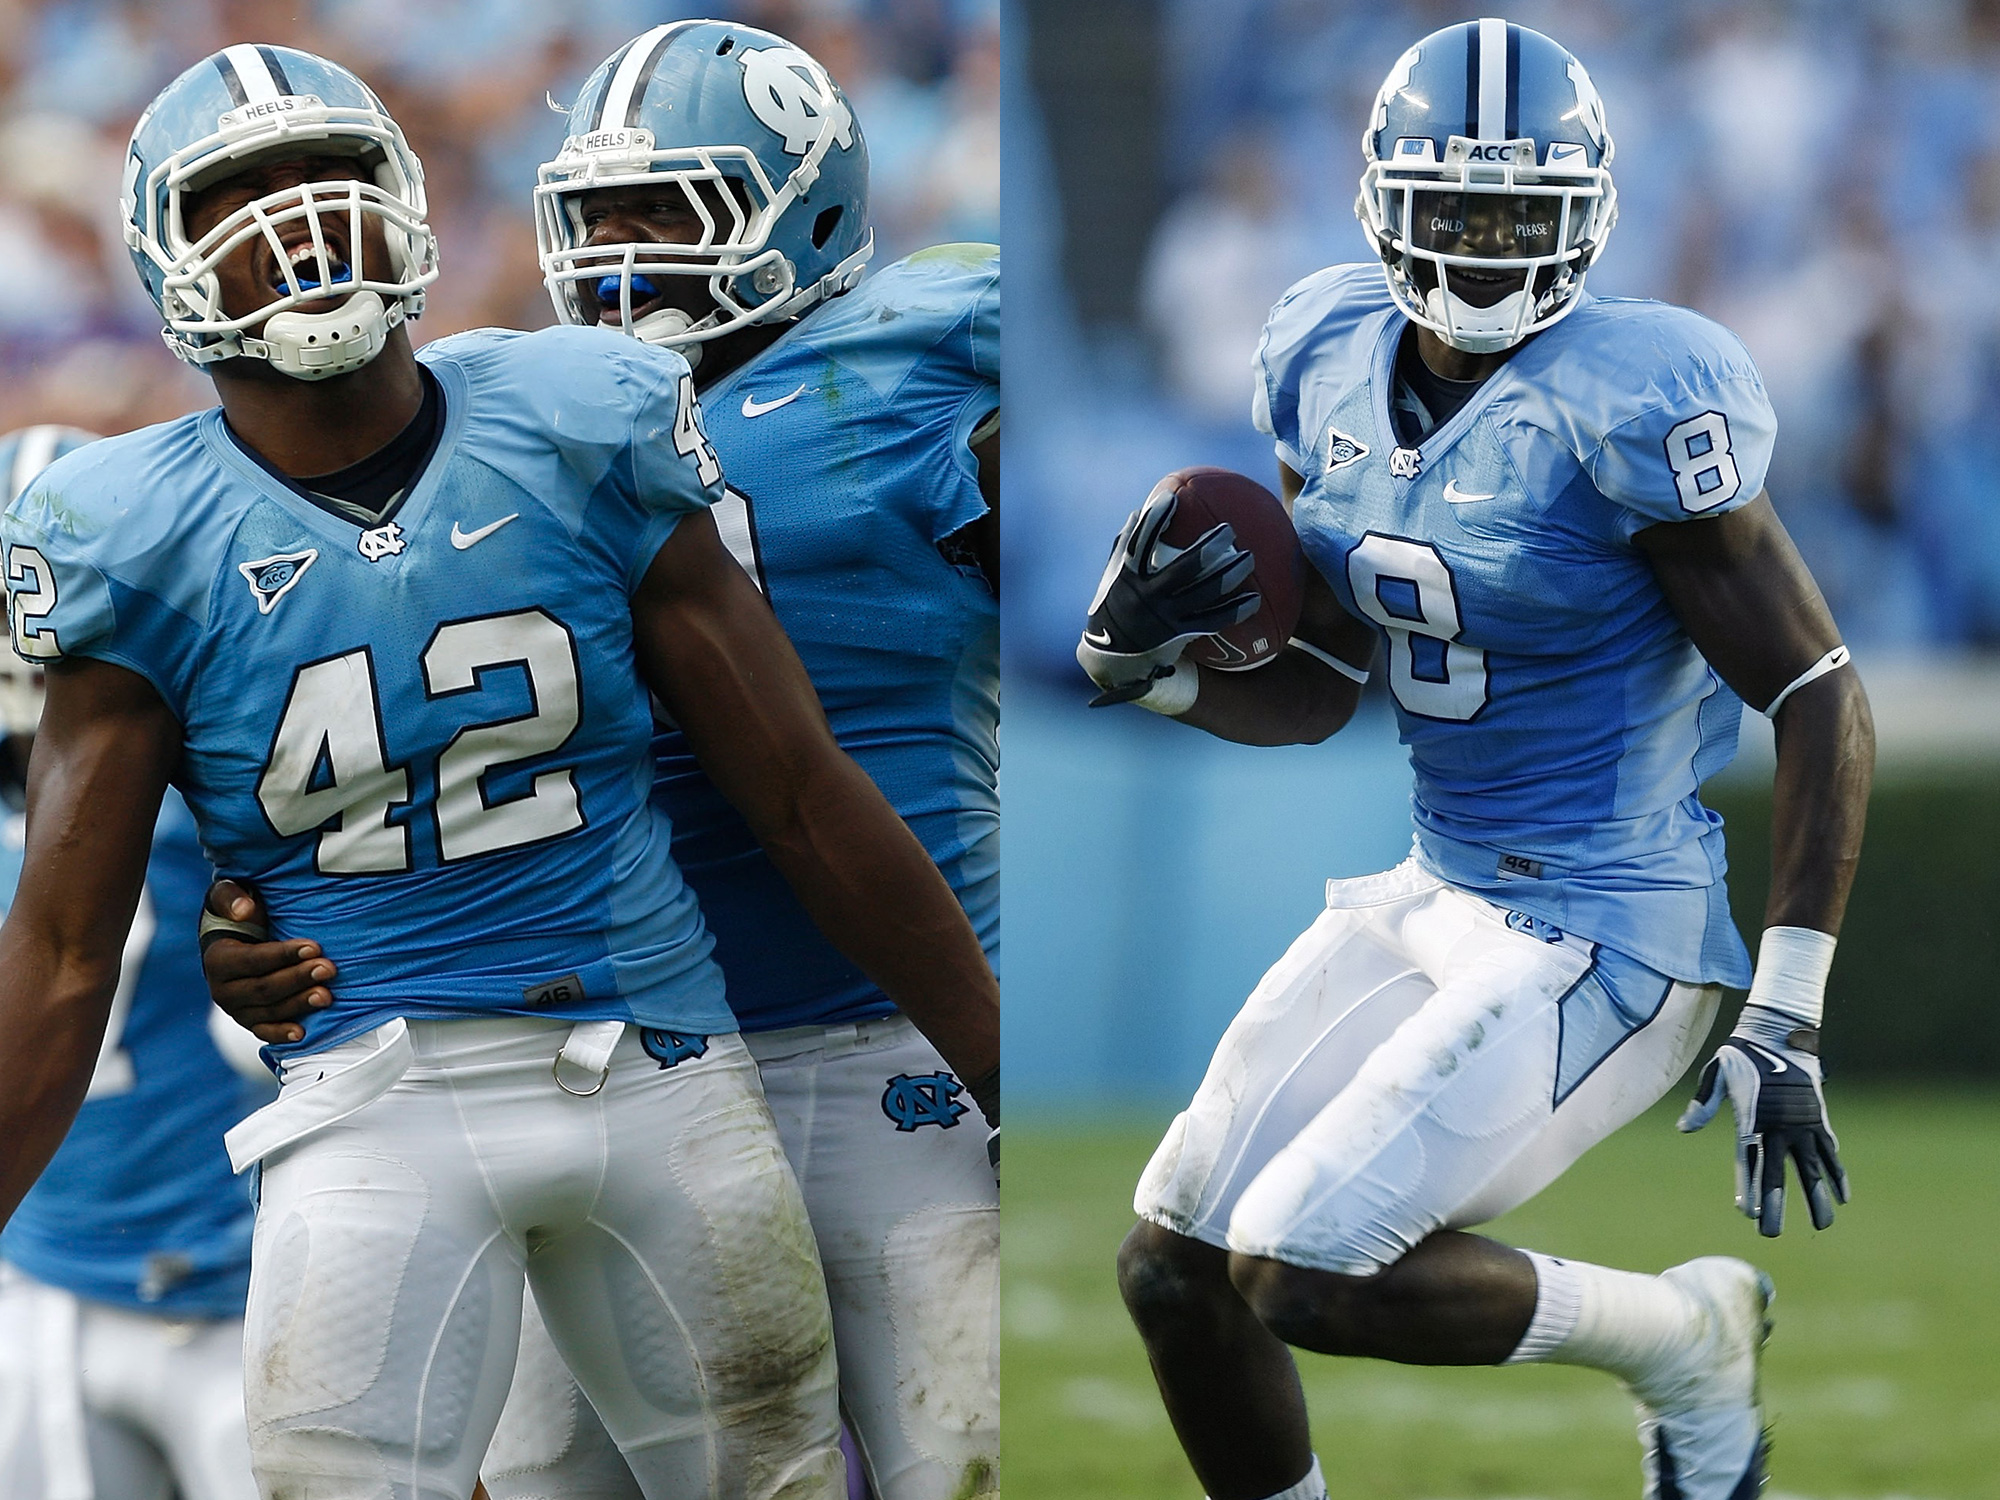 UNC football Agent guilty of giving cash to 3 players